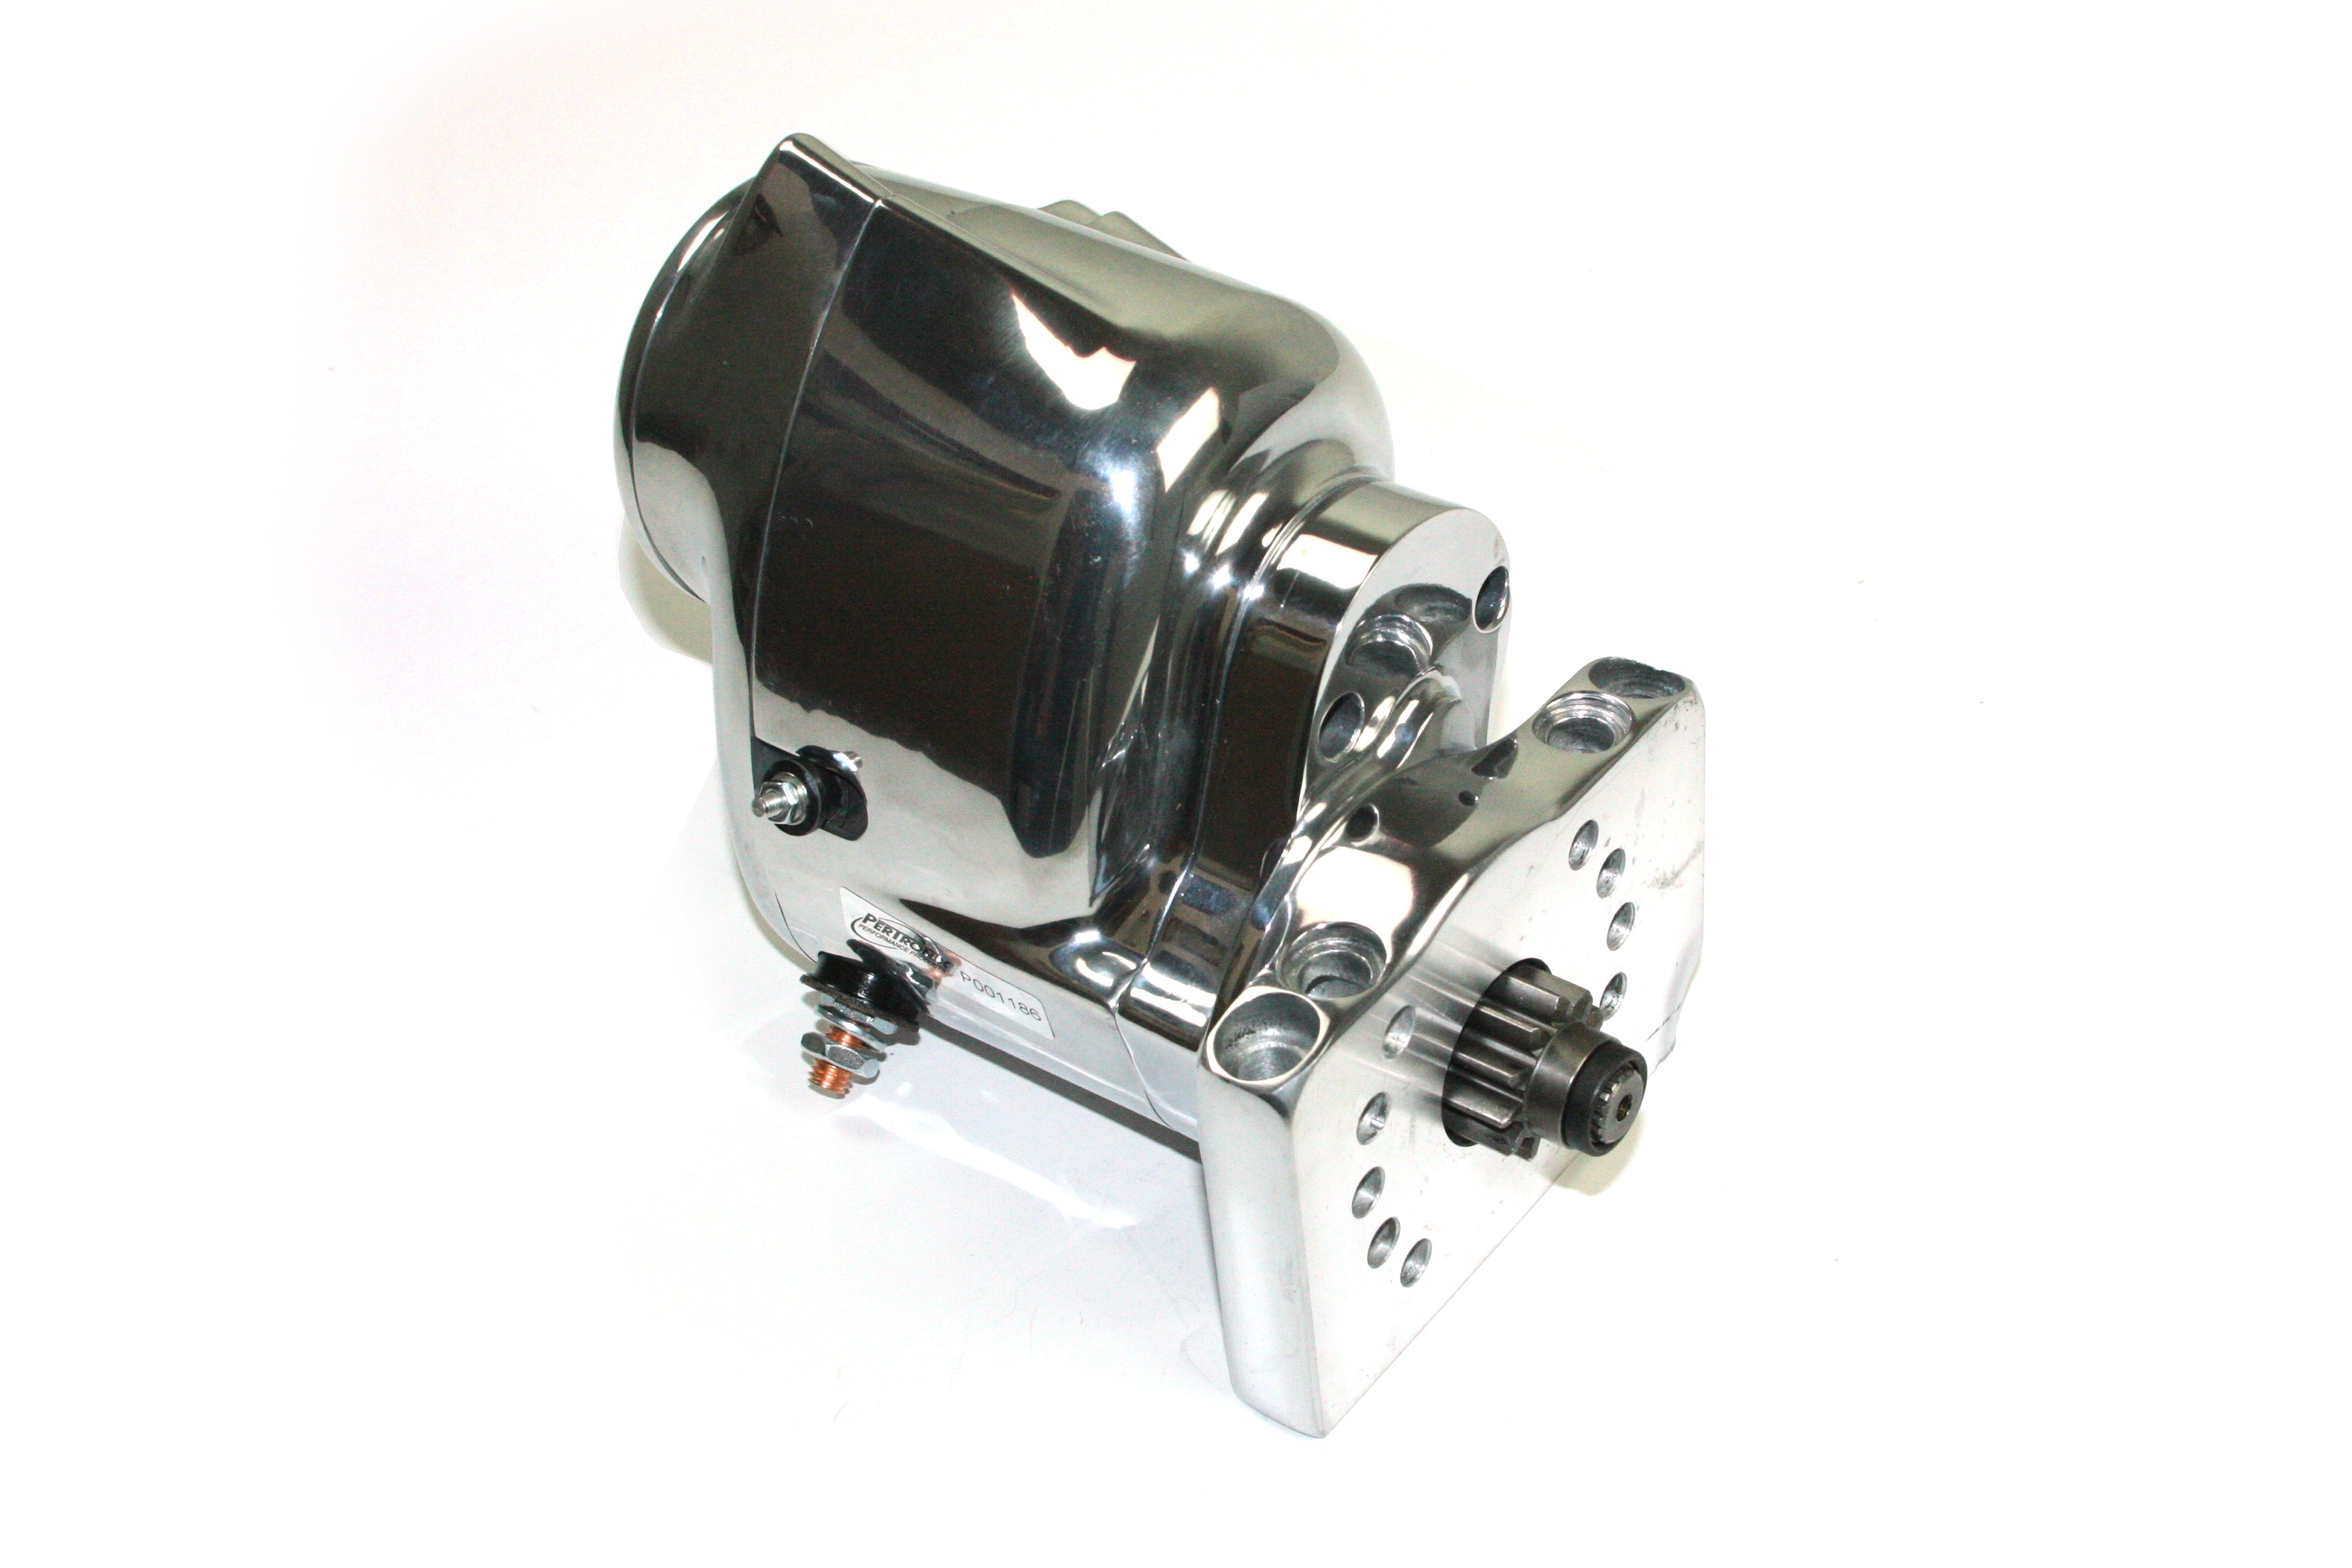 Pertronix part number S3000P-M Contour Marine Starter 1964-2000 Chevrolet SB/BB, 153T and 168T flywheels, 1963-74 L6 (230, 250, 292 engines) with straight botl pattern, polished finish